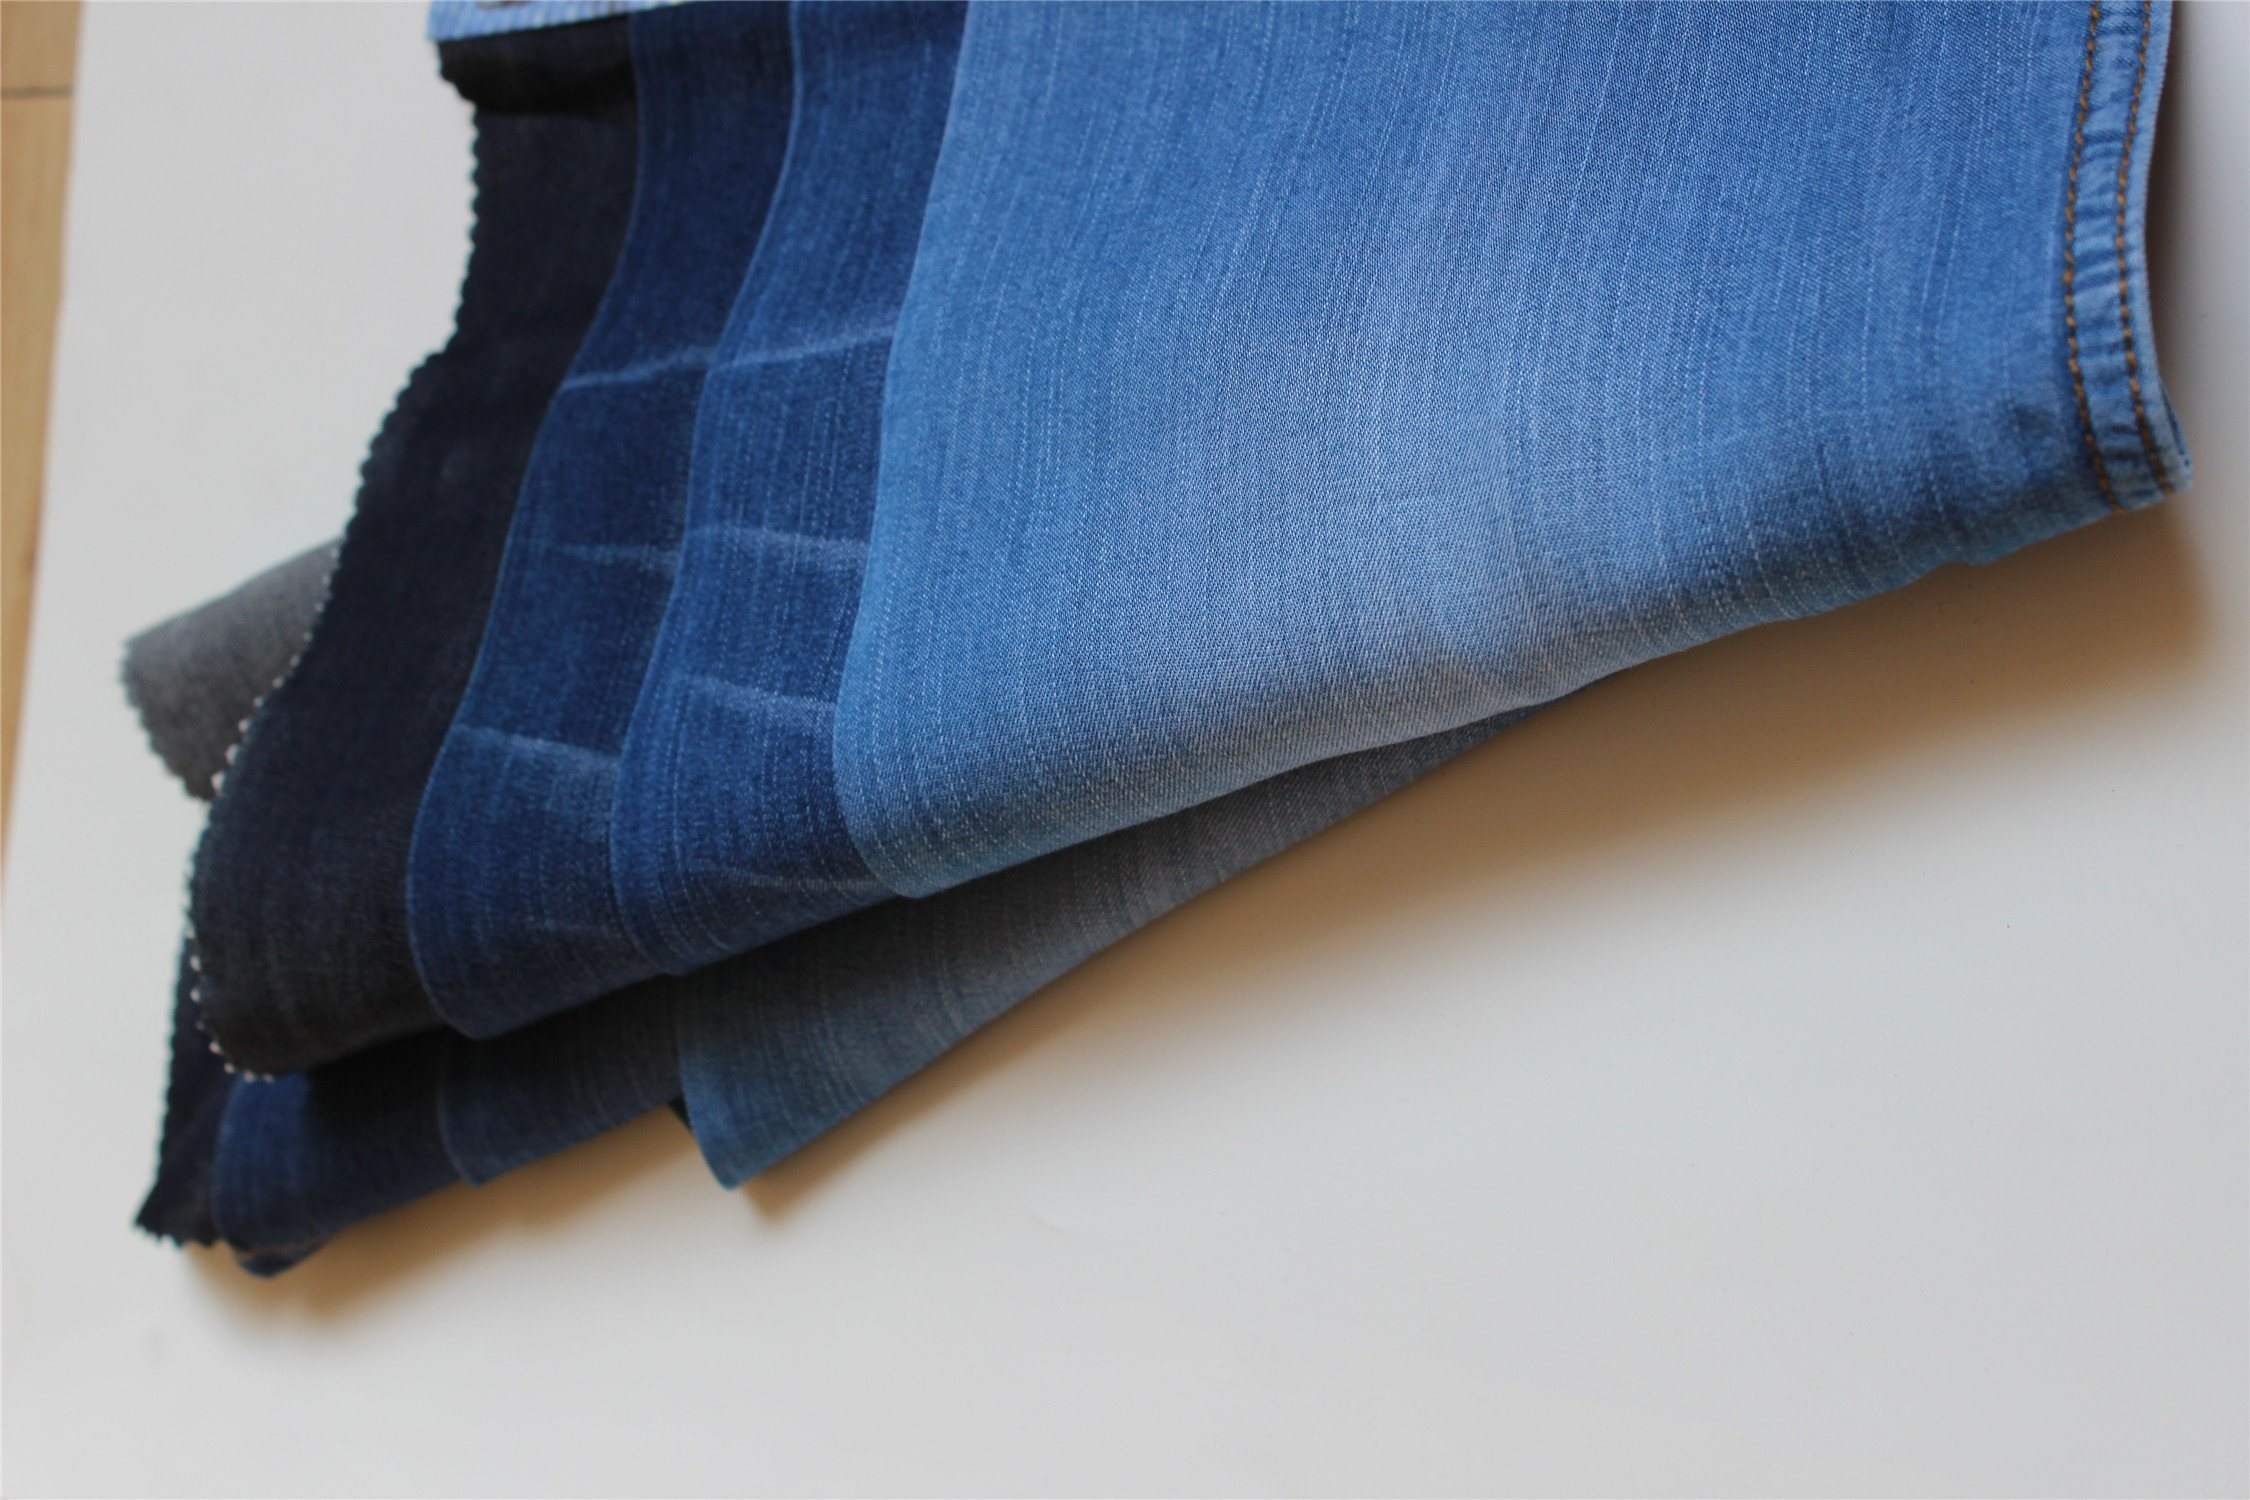 100%Tencel Indigo Denim For Garments